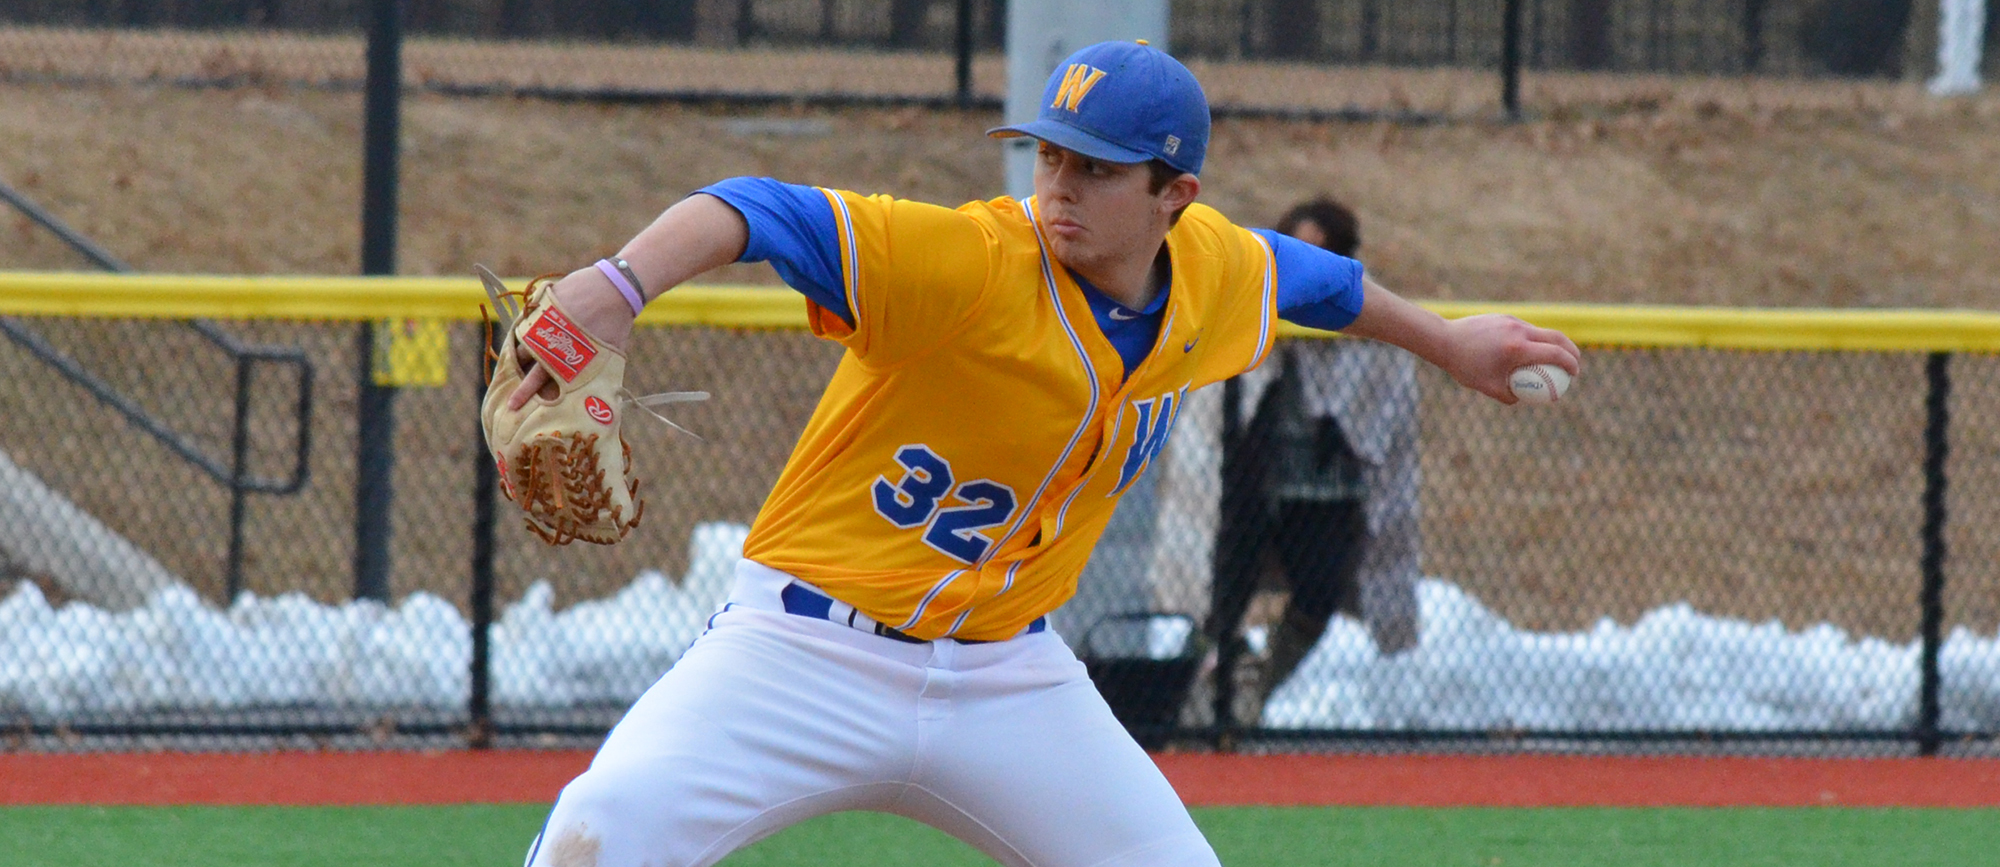 Senior Bob Hamel pitched six strong innings but did not receive a decision in Western New England's season-opening loss to Westfield State on Sunday. (Photo by Dave Caspole / Westfield State Athletics)